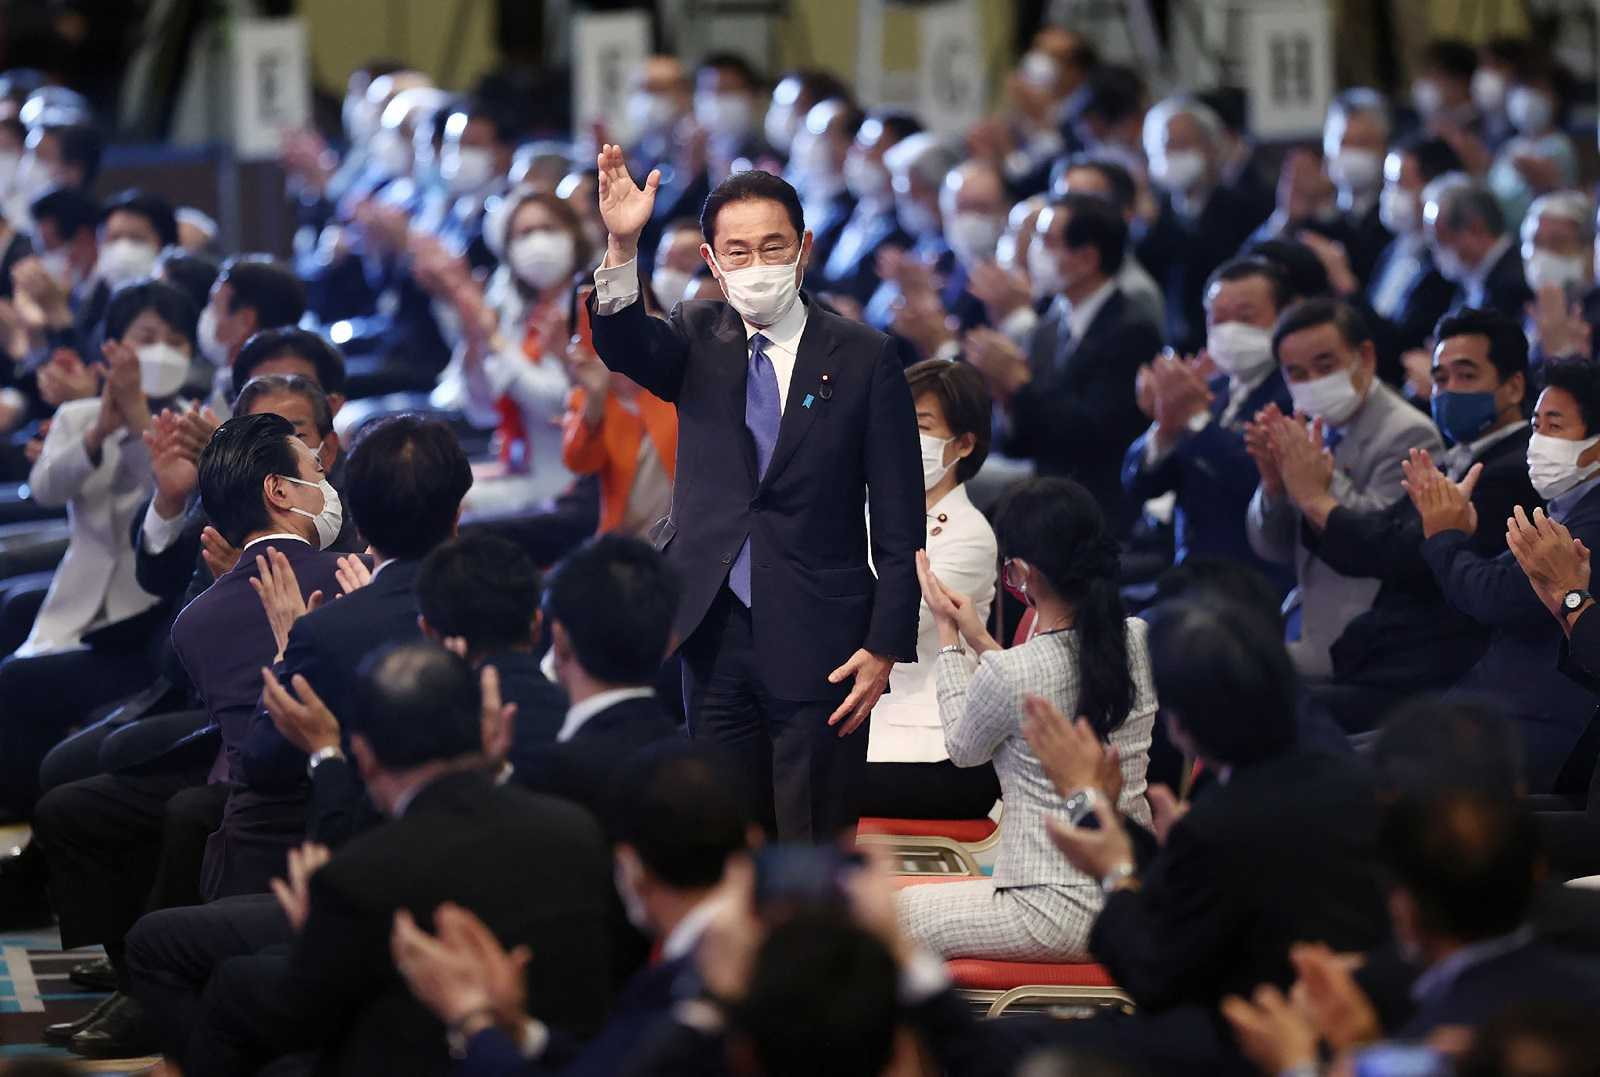 Fumio Kishida after being elected as the new president at the LDP election in Tokyo, 29 September 2021 (STR/Jiji Press/AFP via Getty Images)